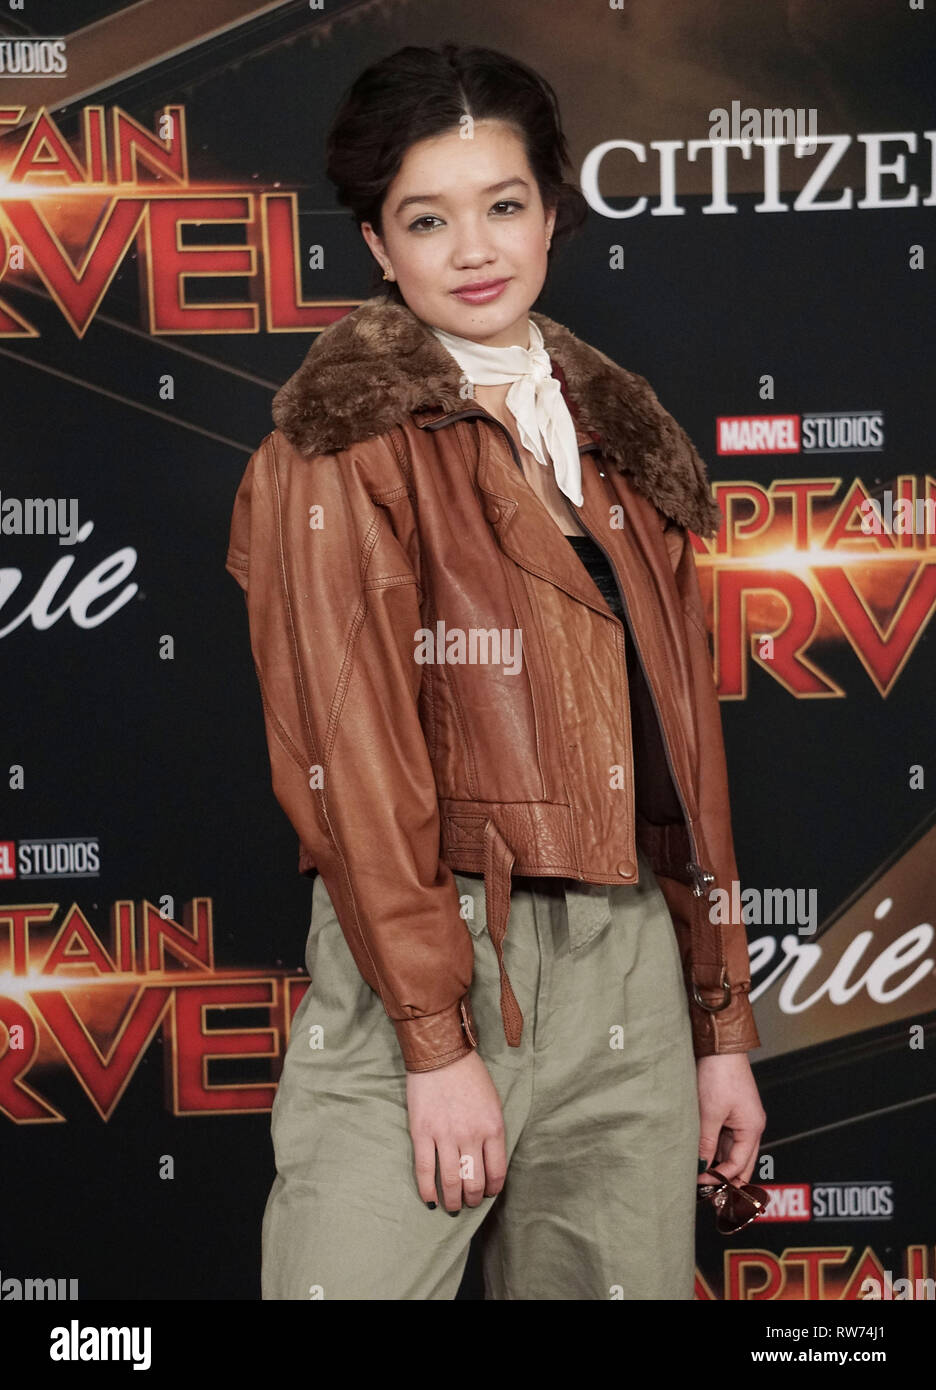 Los Angeles, USA. 04th Mar, 2019. Peyton Elizabeth Lee 123 attends the Marvel Studios 'Captain Marvel' premiere on March 04, 2019 in Hollywood, California. Credit: Tsuni/USA/Alamy Live News - Stock Image